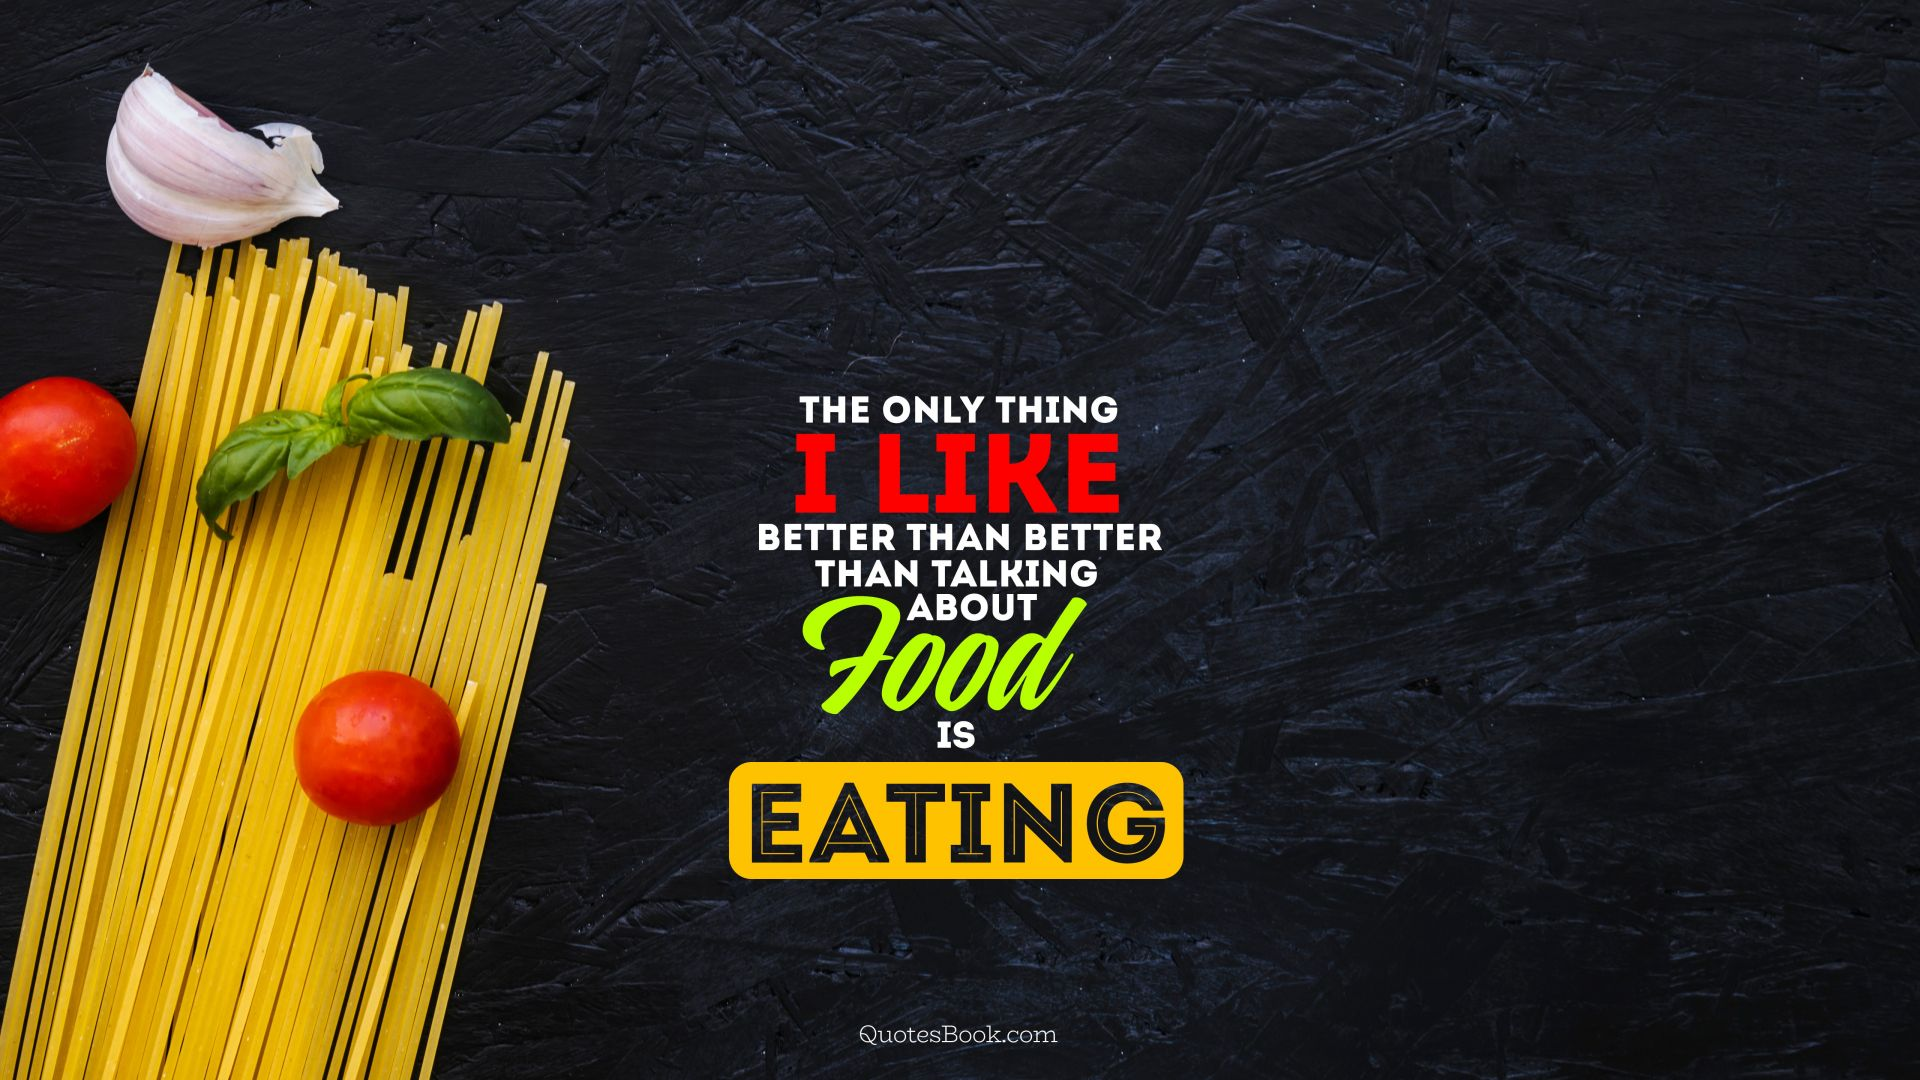 The only thing i like better than better than talking about food is eating